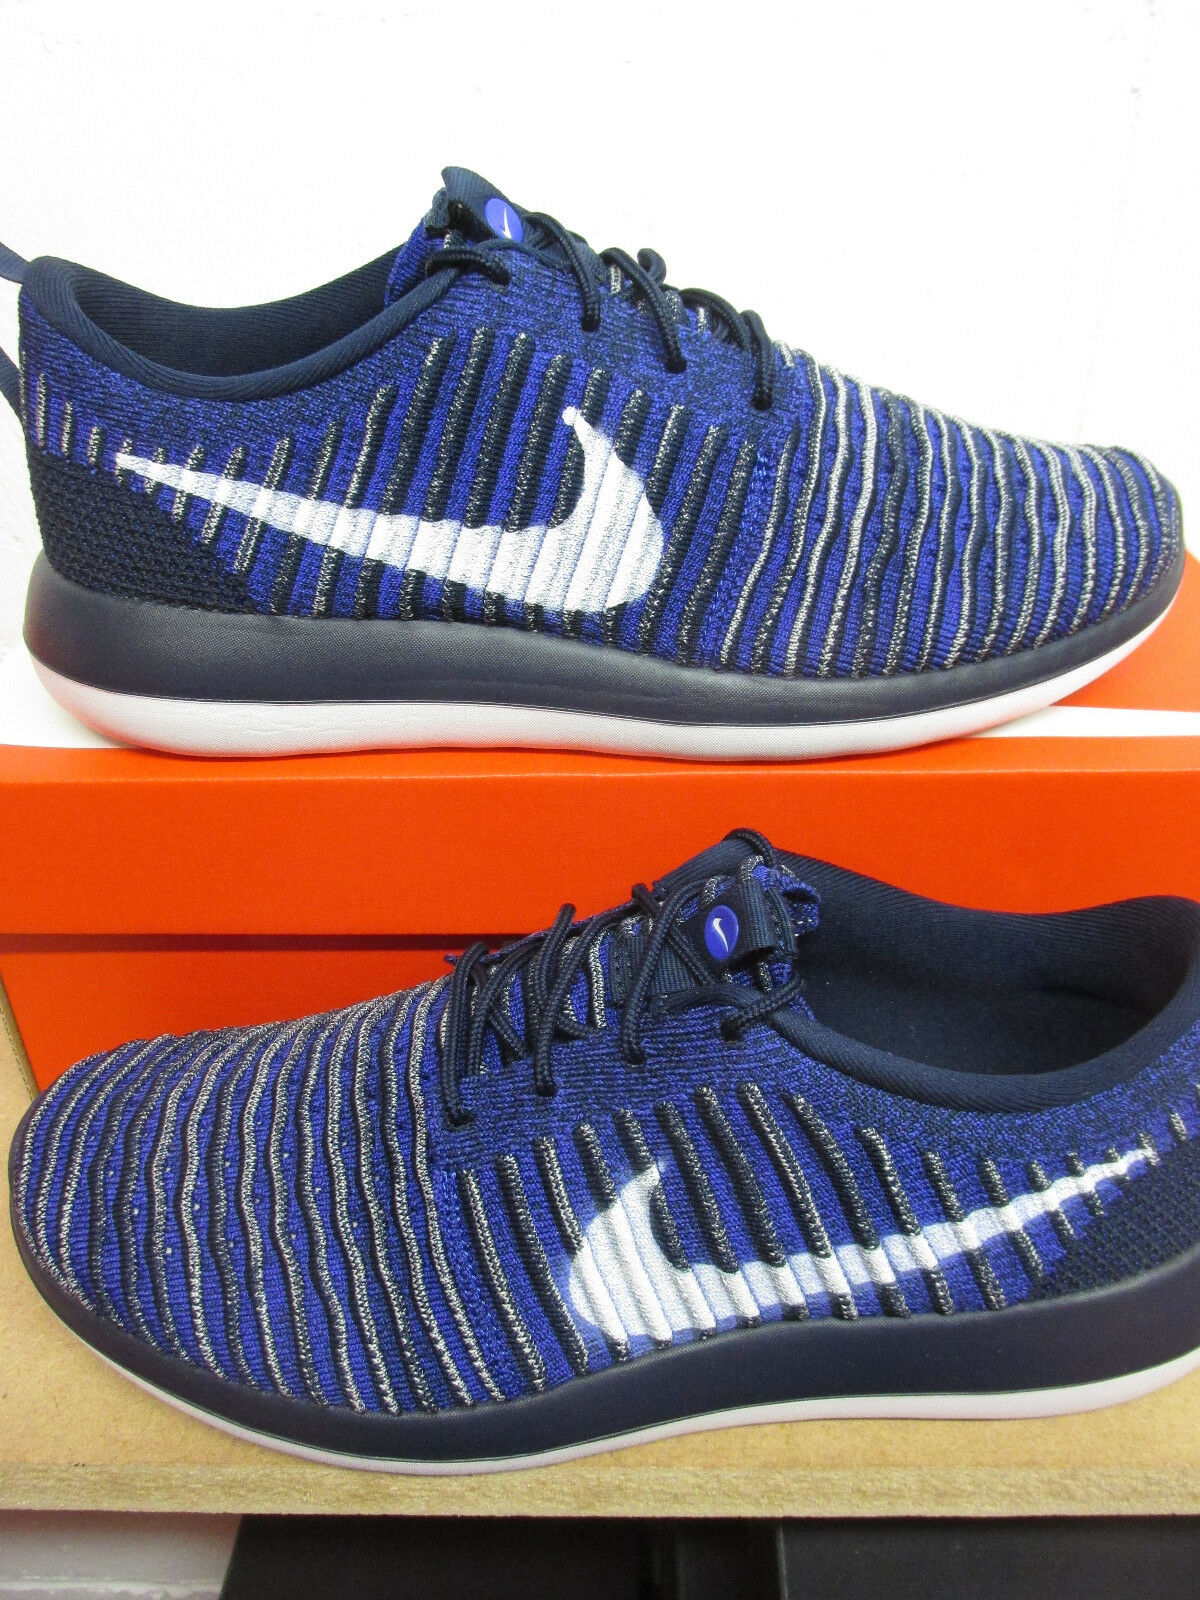 Nike Roshe Two Flyknit Mens Running Trainers 844833 402 Sneakers shoes